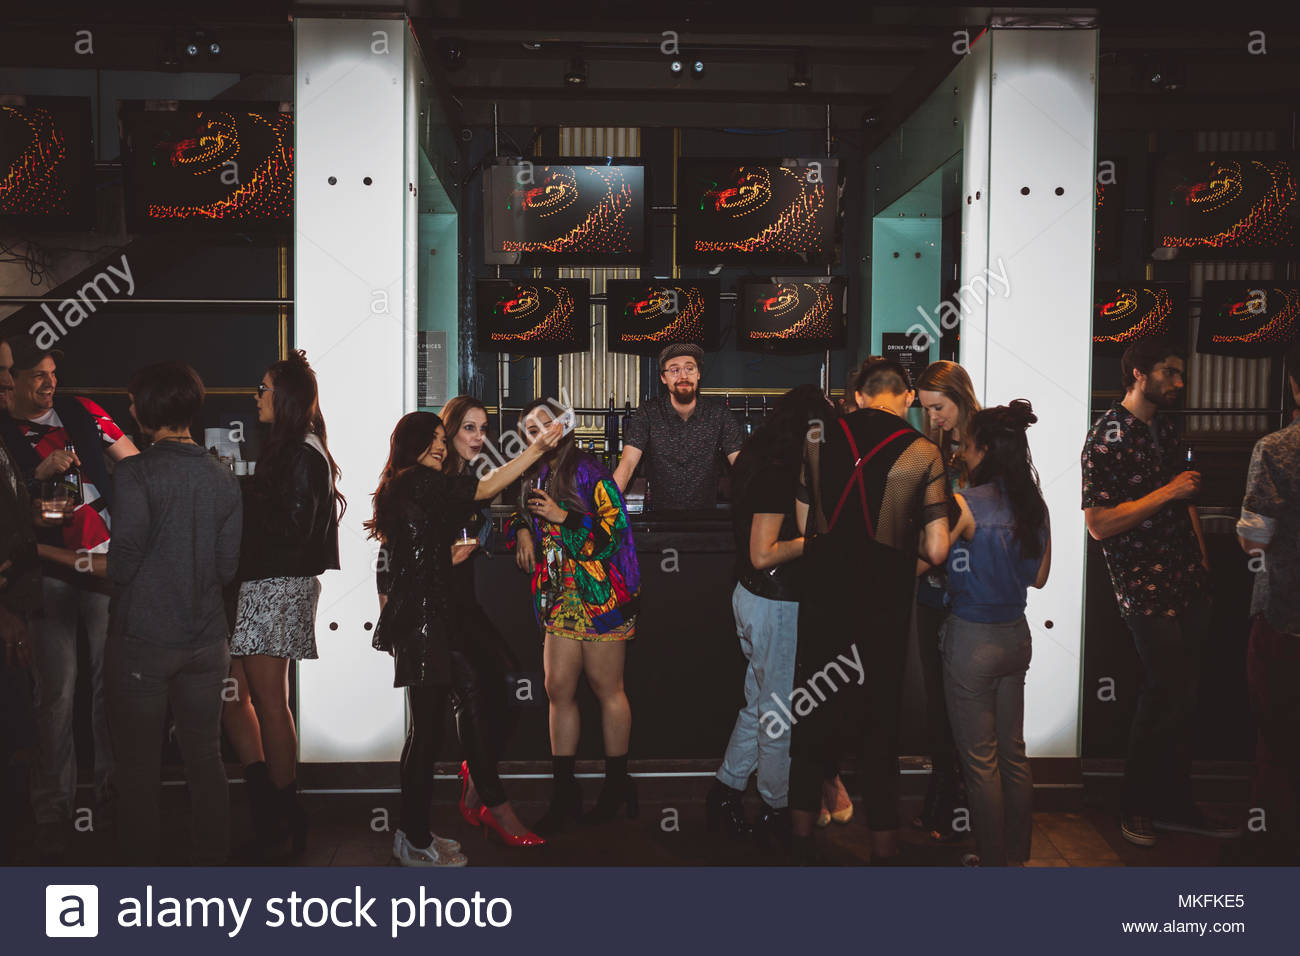 Milennials hanging out, taking selfie in bar - Stock Image